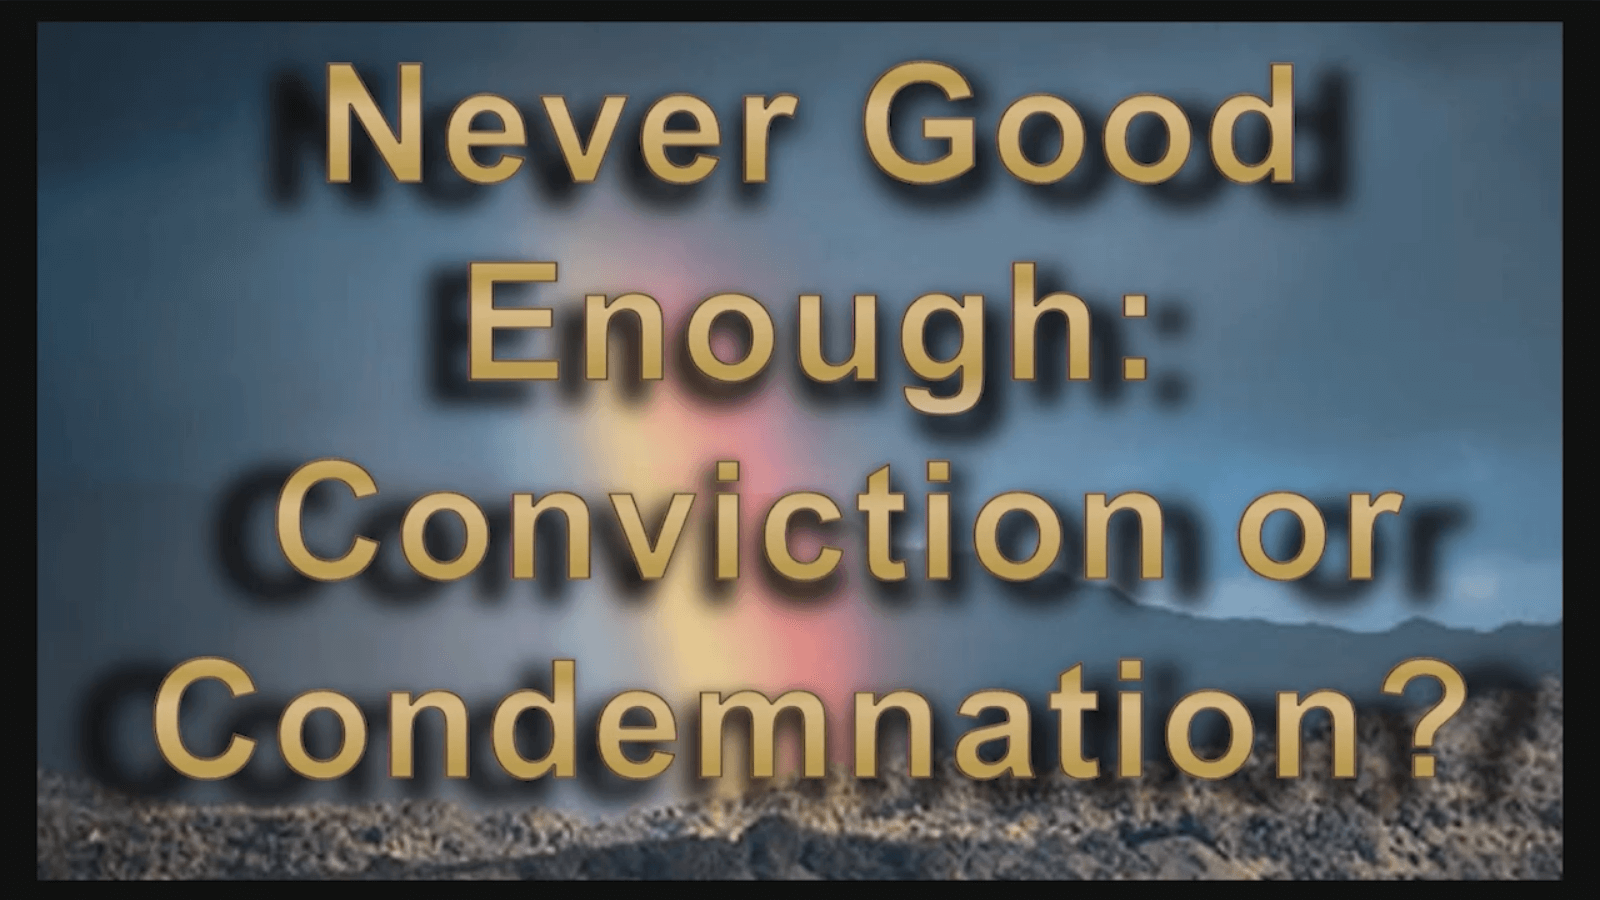 Never Good Enough: Conviction or Condemnation?